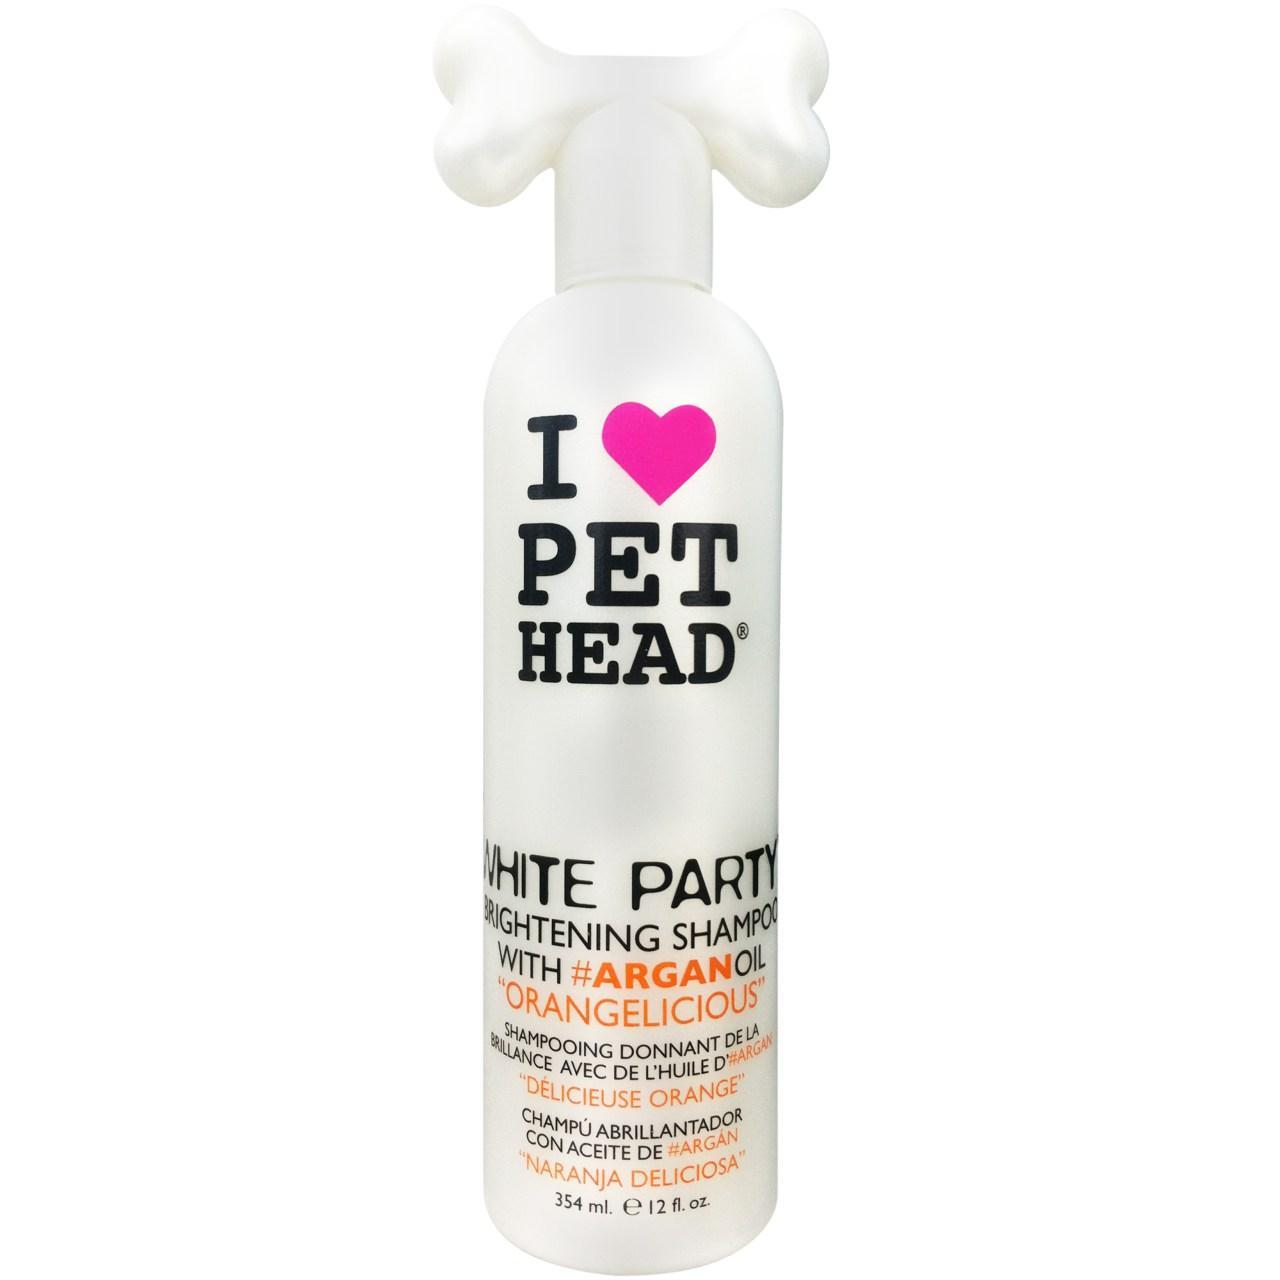 An image of Pet Head White Party